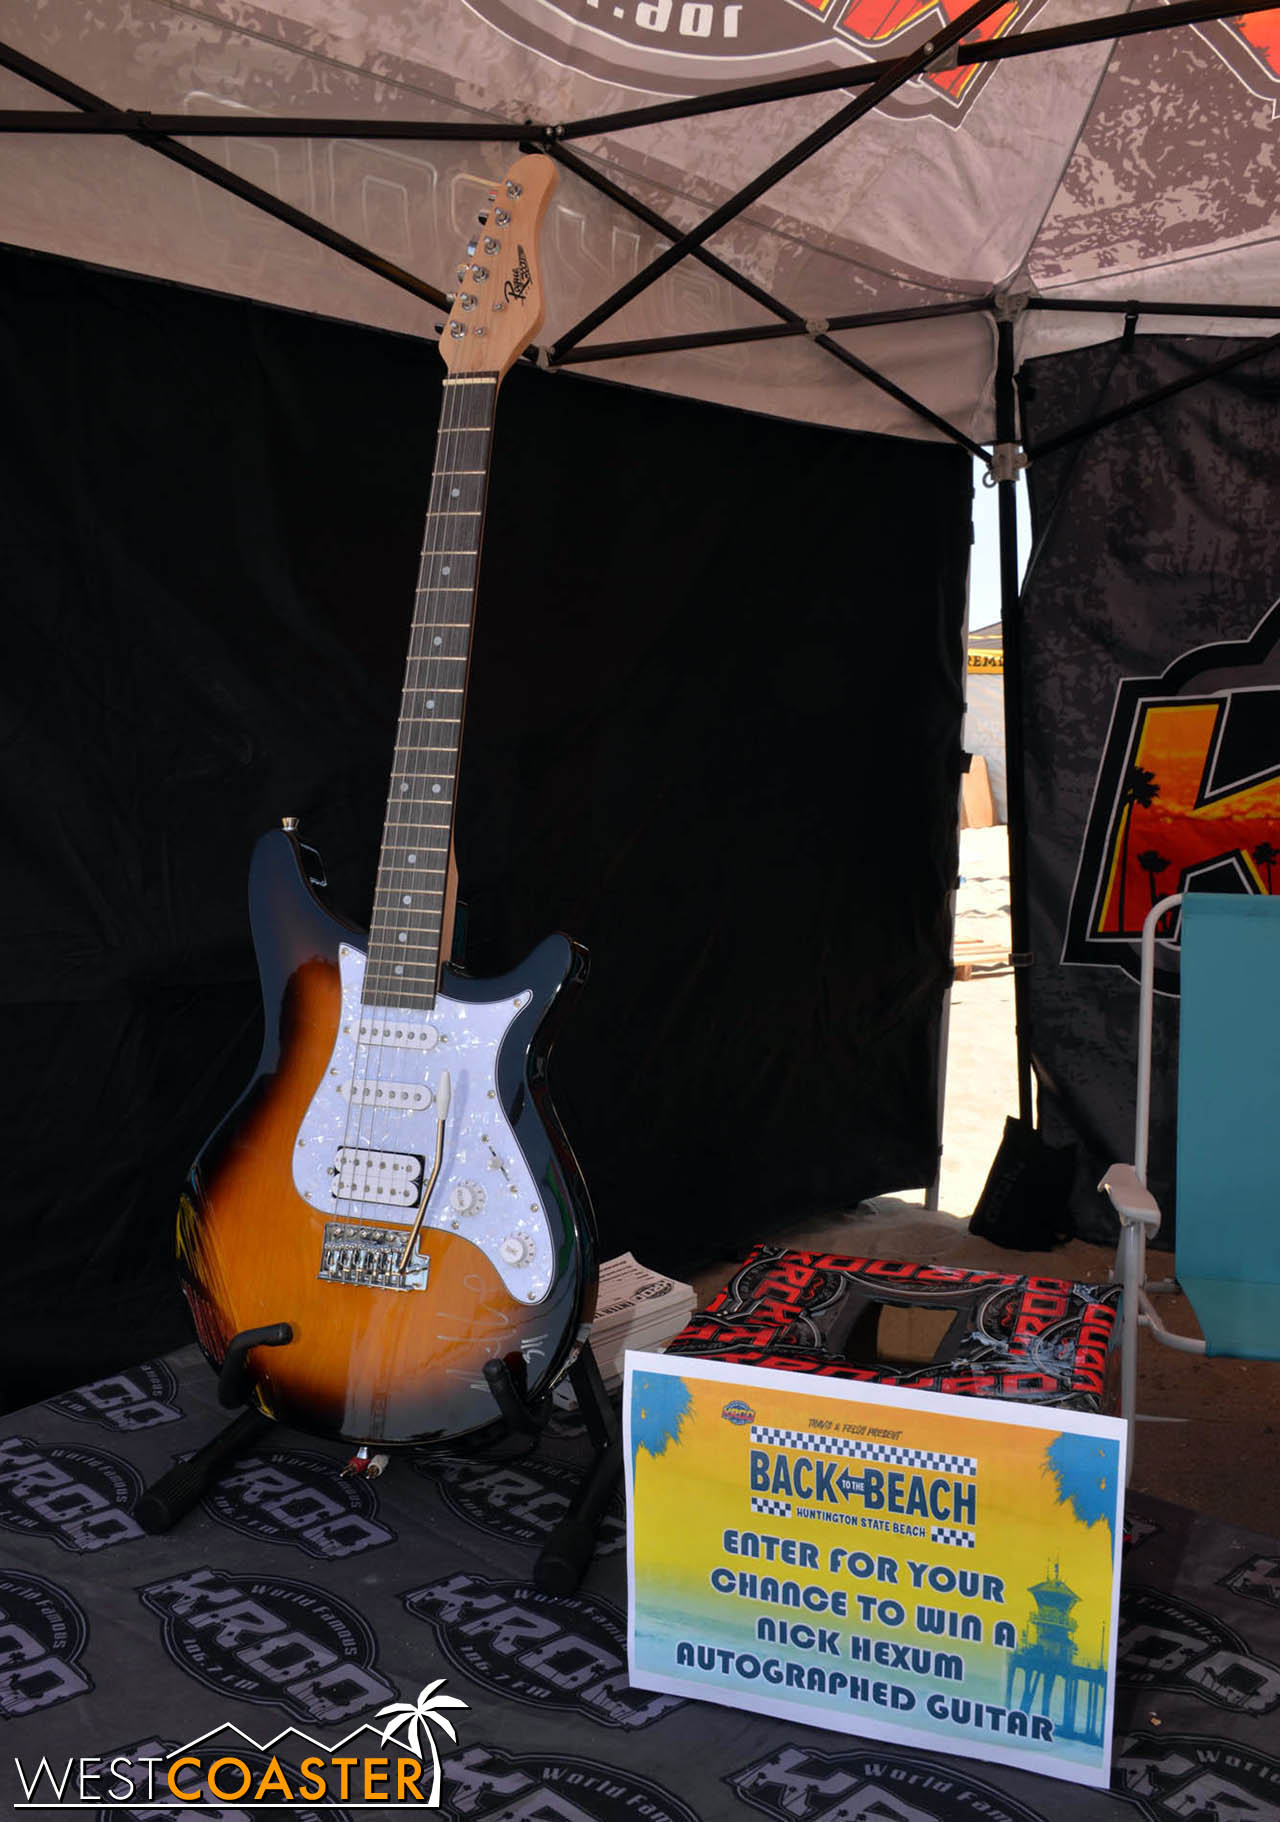 You could win a guitar in a raffle.